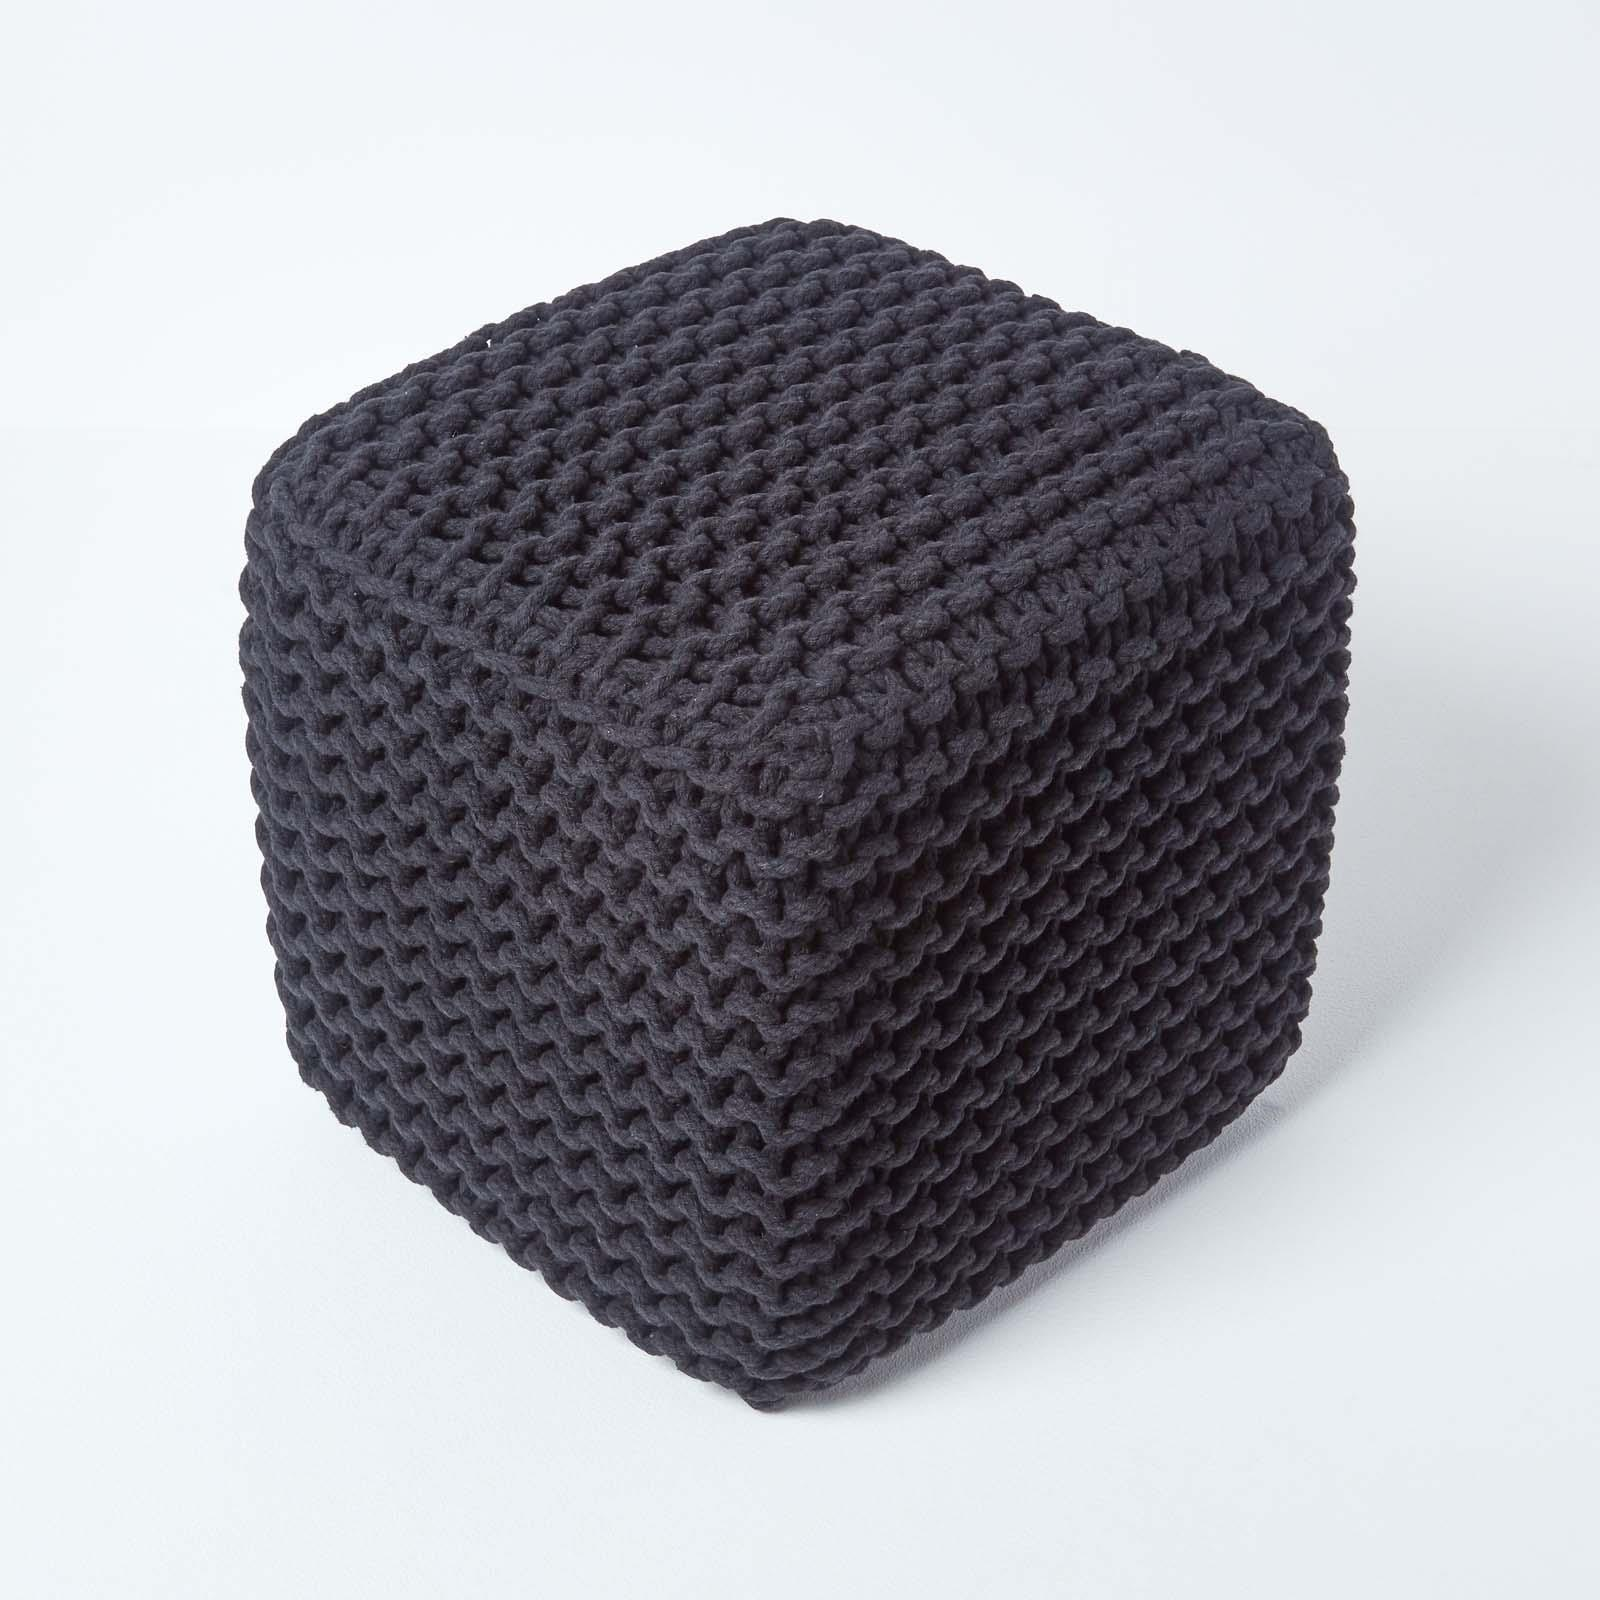 Hand-Knitted-100-Cotton-Pouffes-Round-Sphere-Or-Cube-Square-Chunky-Footstools thumbnail 11